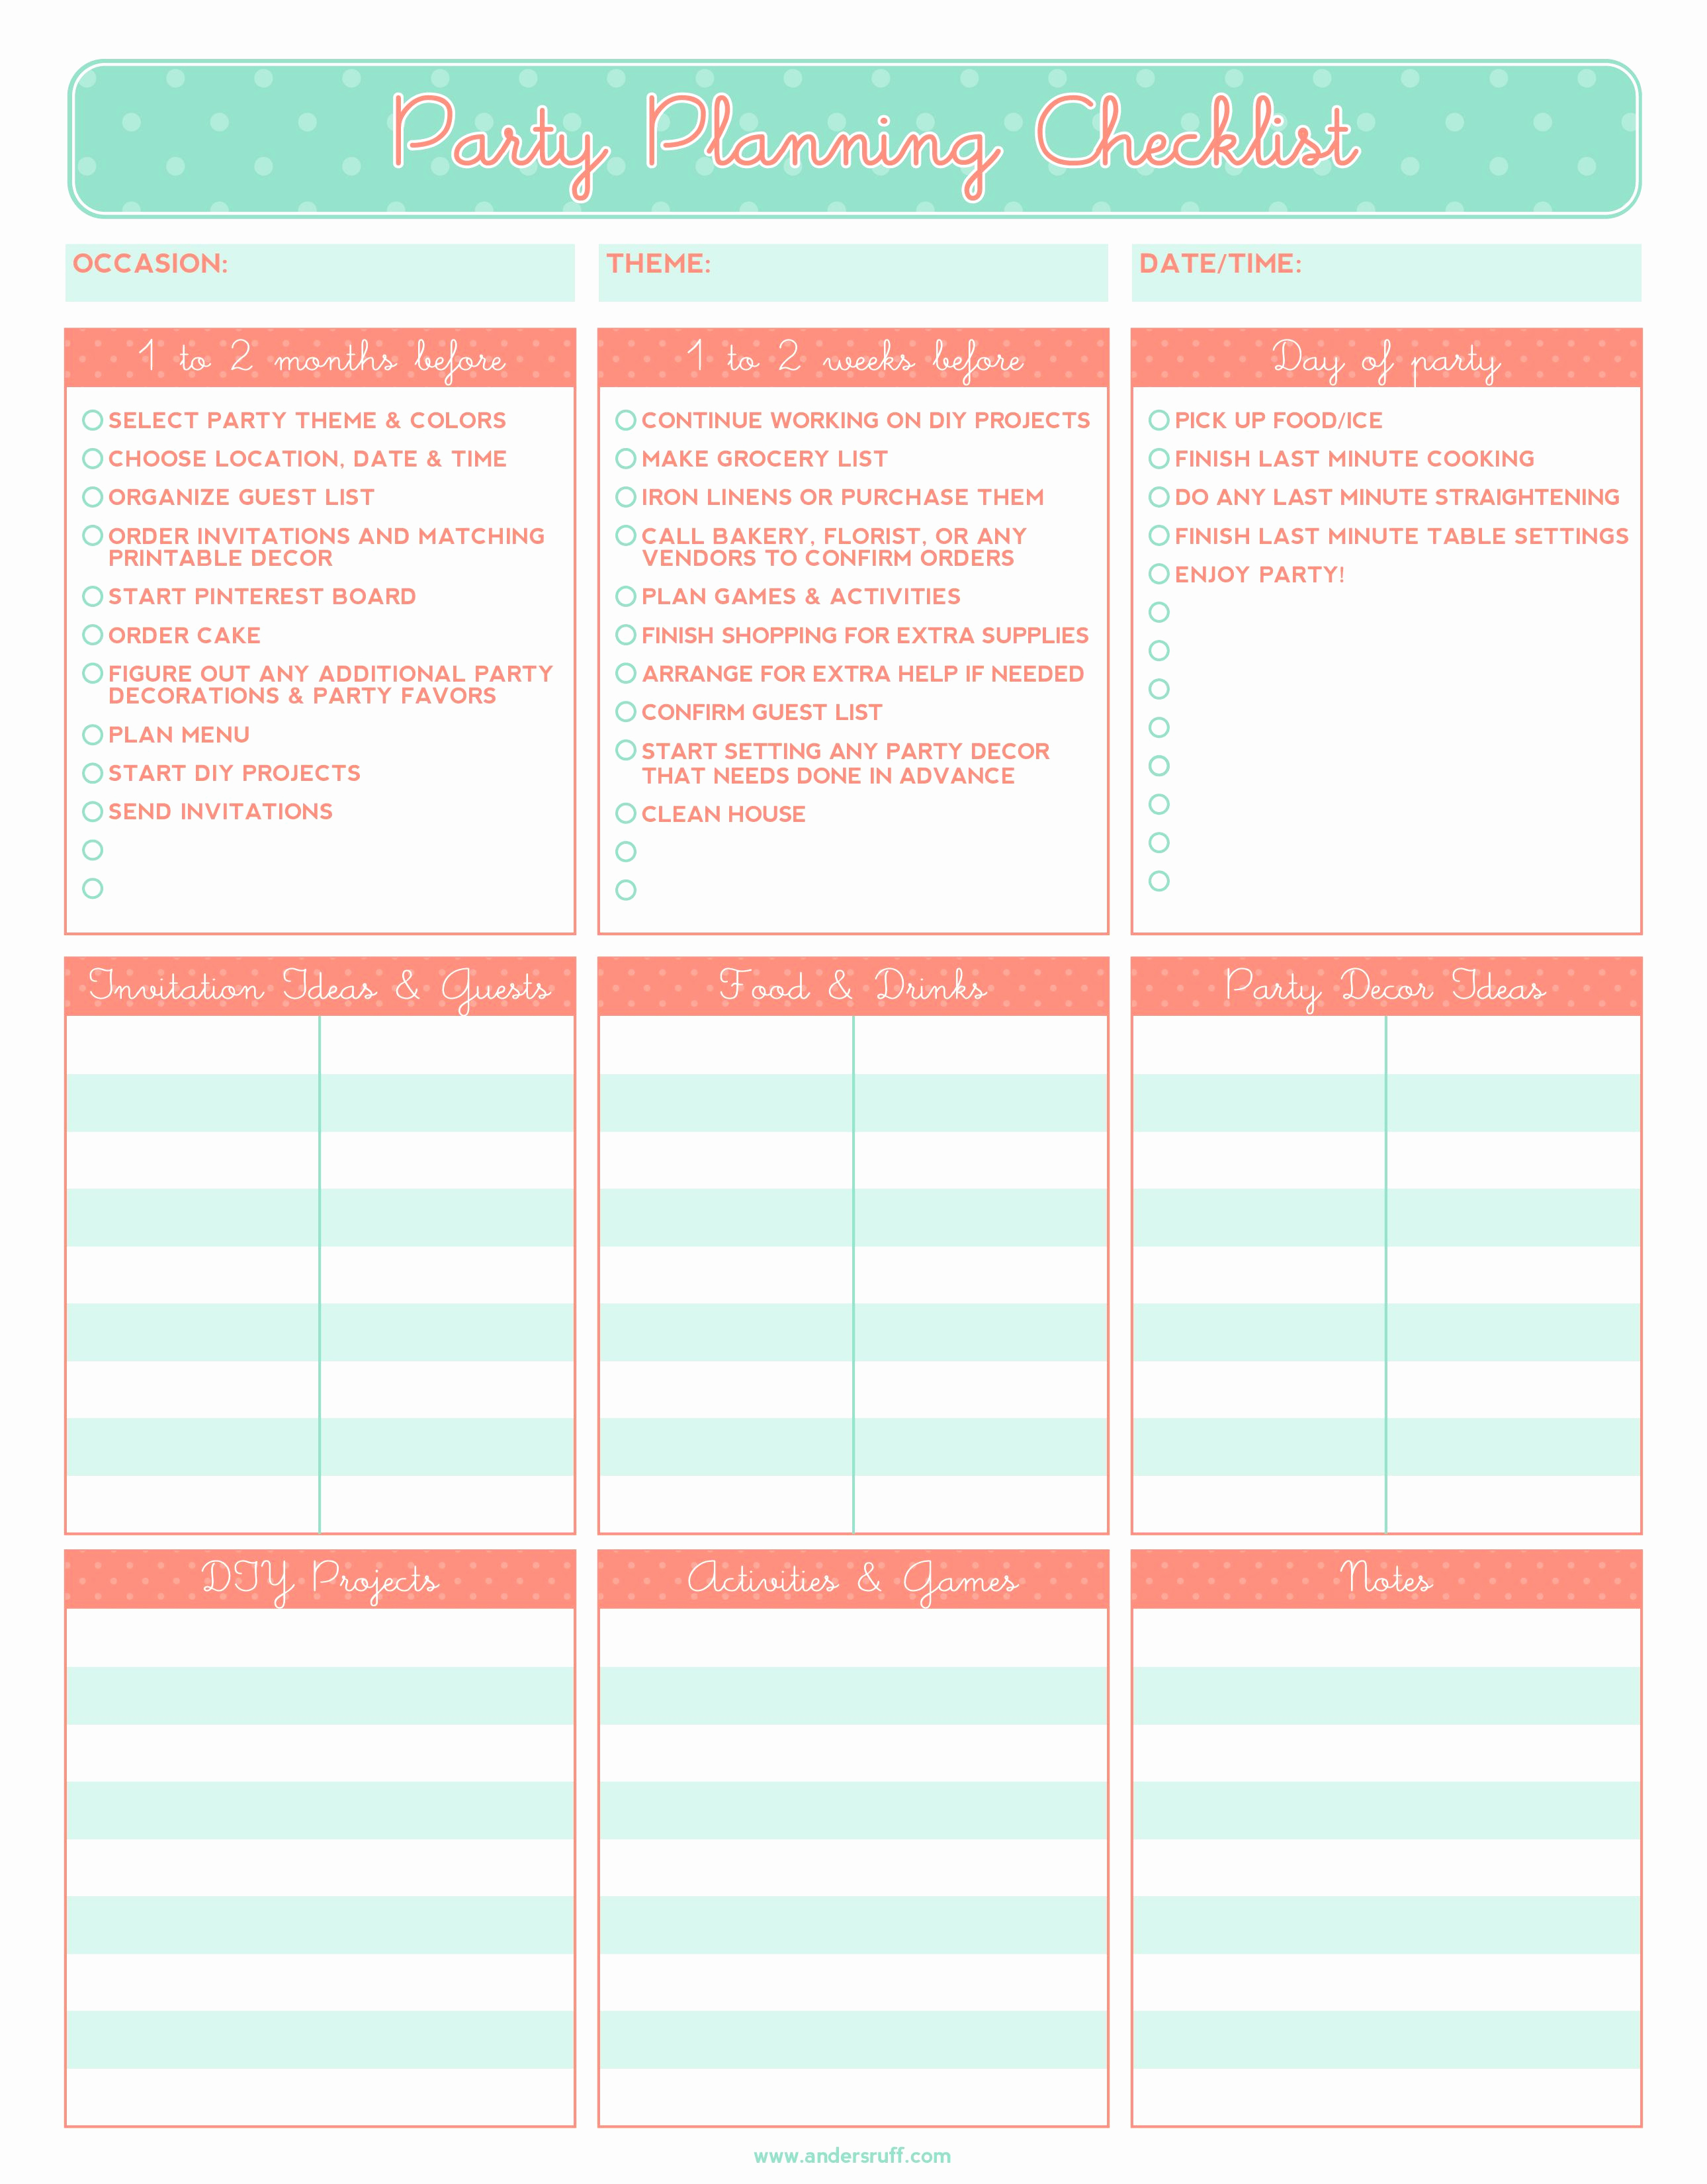 Event Planning Checklist Template Elegant Free Printable Party Planning Checklist